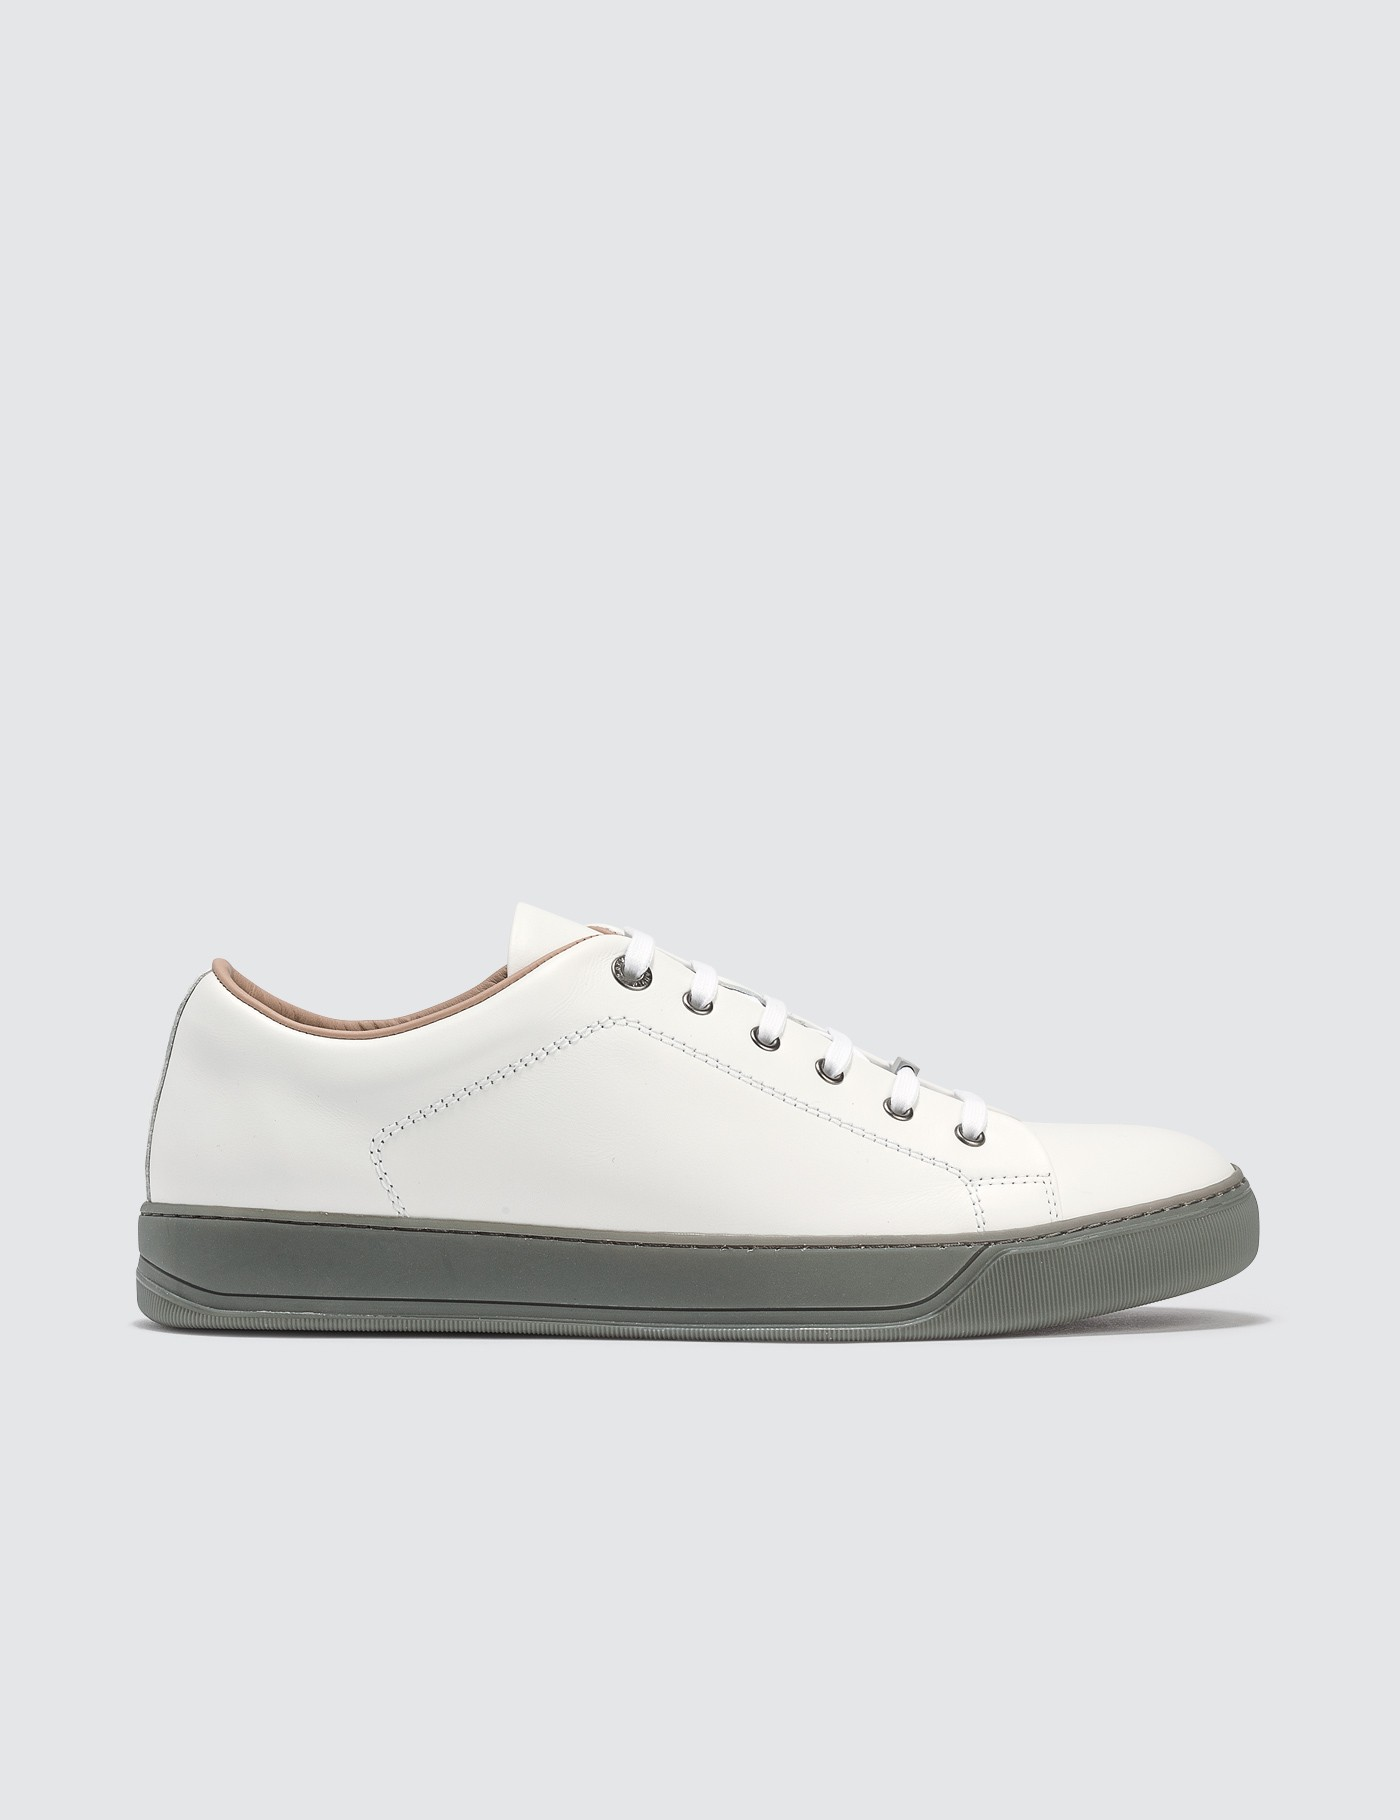 2dcad6600ef Buy Original Lanvin Nappa Calfskin Sneaker at Indonesia | BOBOBOBO